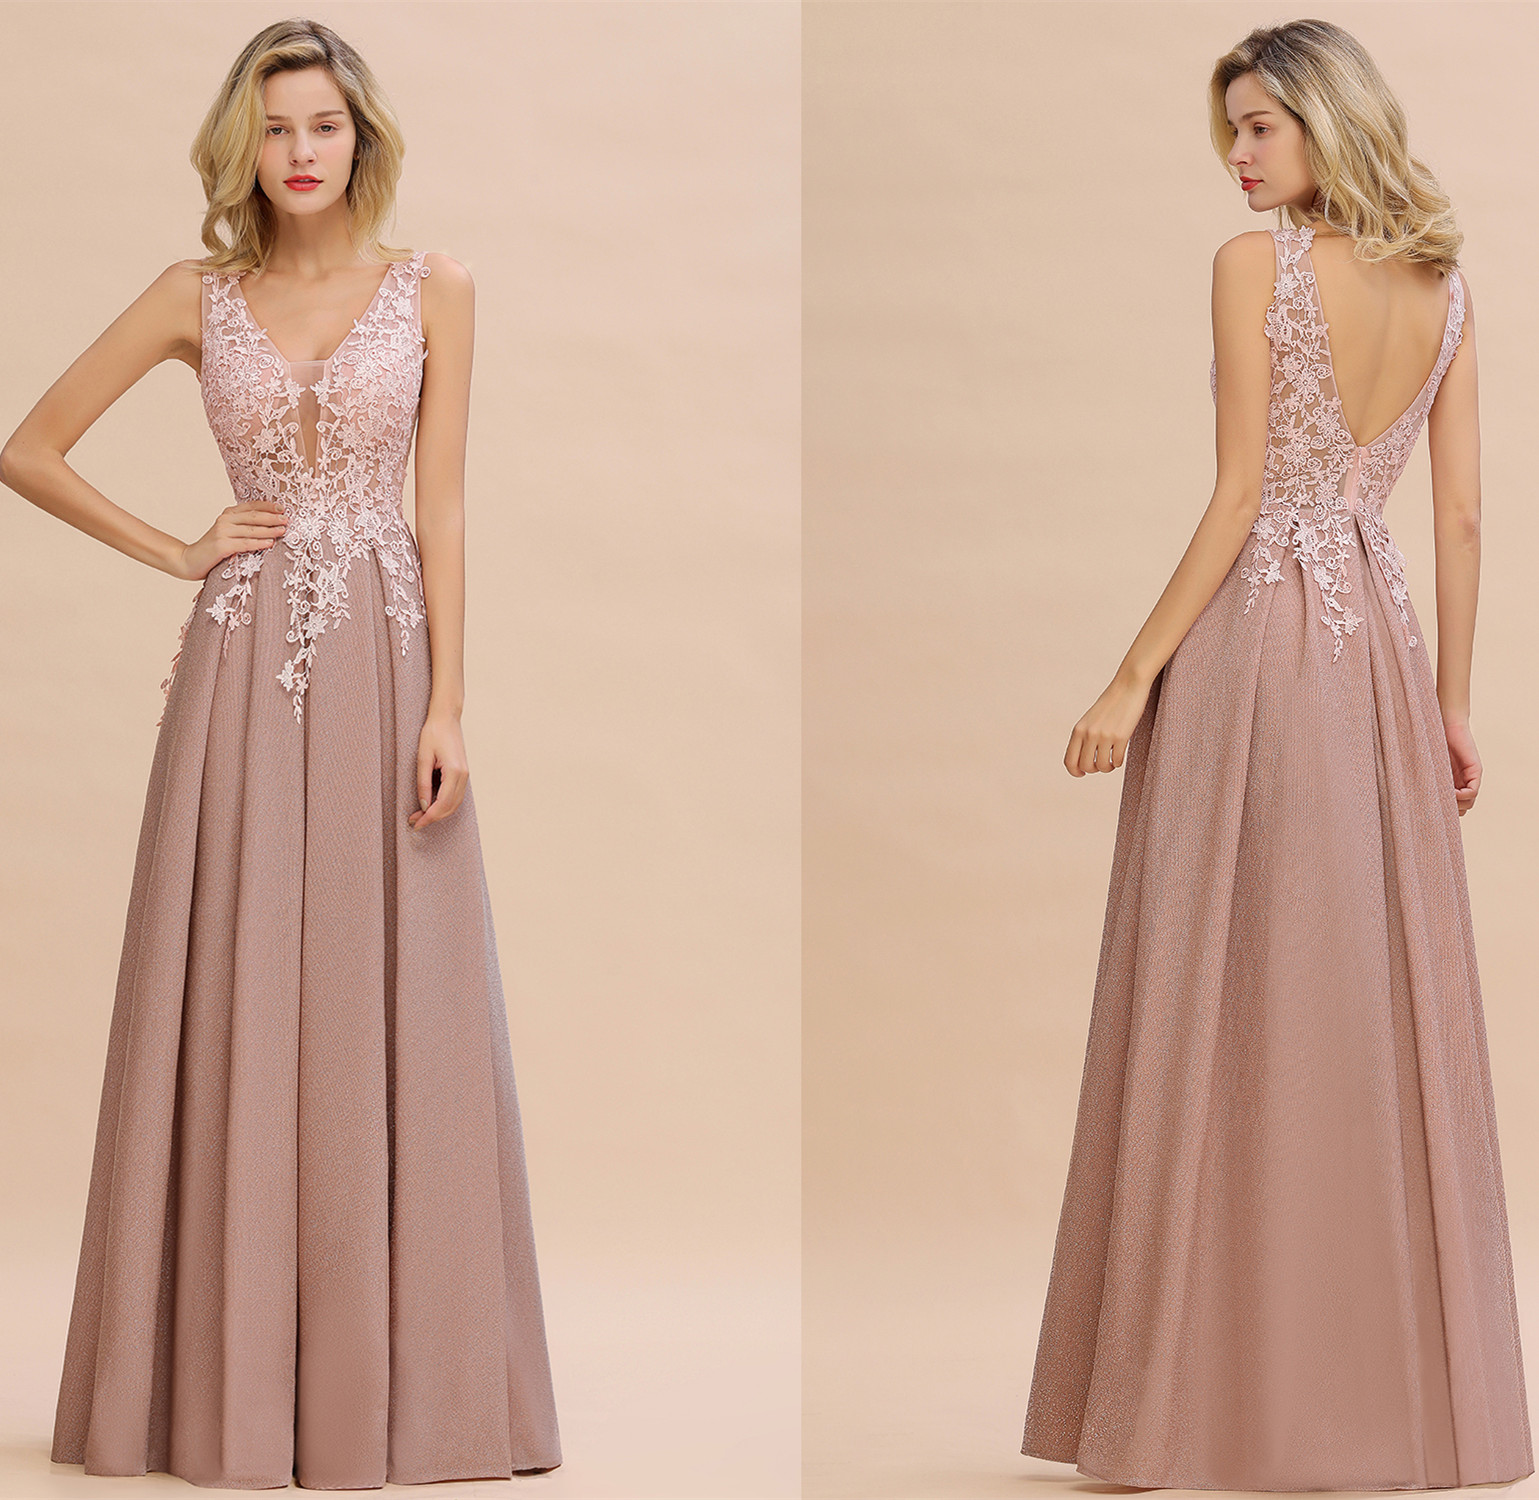 Dust Pink Sleeveless Long Evening Dress Elegant Lace Appliques Party Dress Sexy Backless A Line Party Gowns Vestidos De Novia